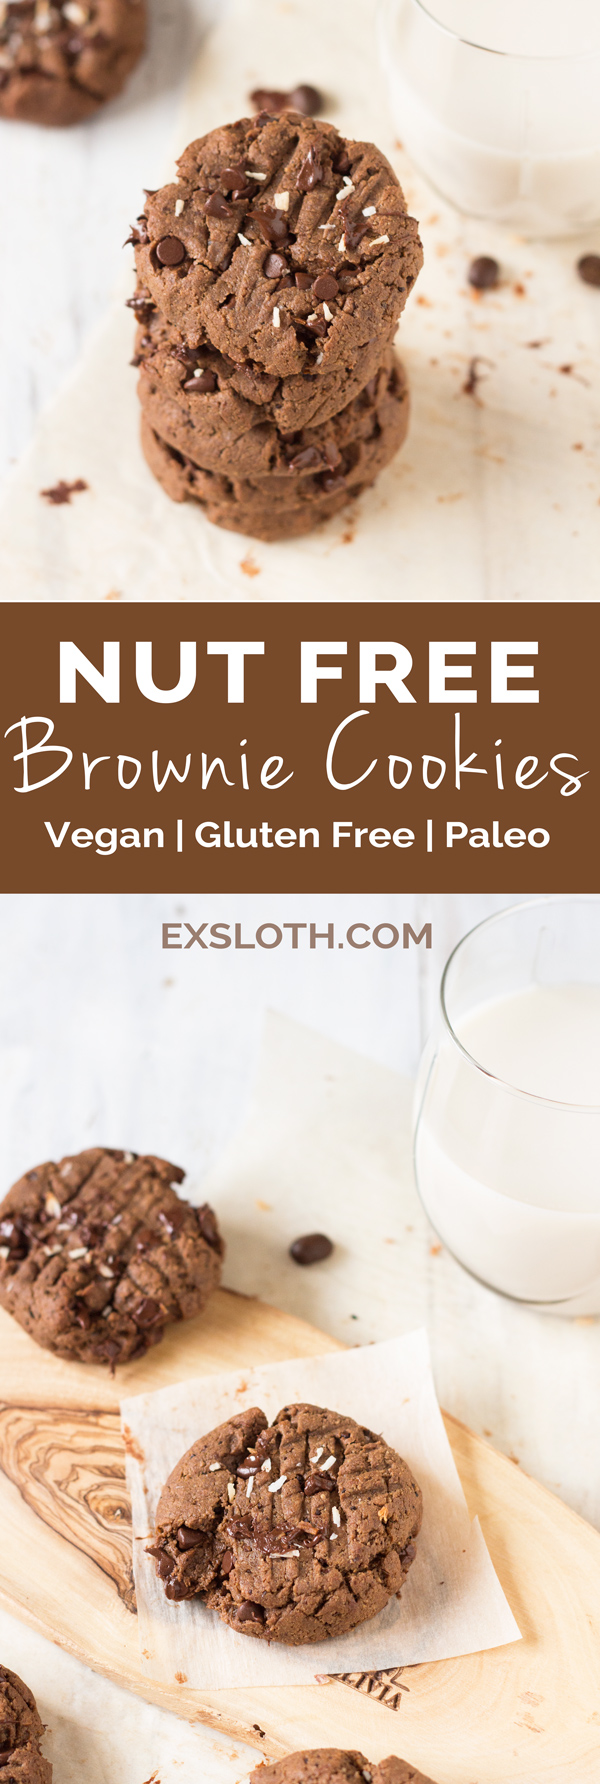 These vegan nut free brownie cookies have a light crust/crunch on the outside but are soft, chewy and basically brownie-like on the inside. Plus, they're made with coconut flour and sunflower seed butter so they're gluten-free and paleo via @ExSloth | ExSloth.com